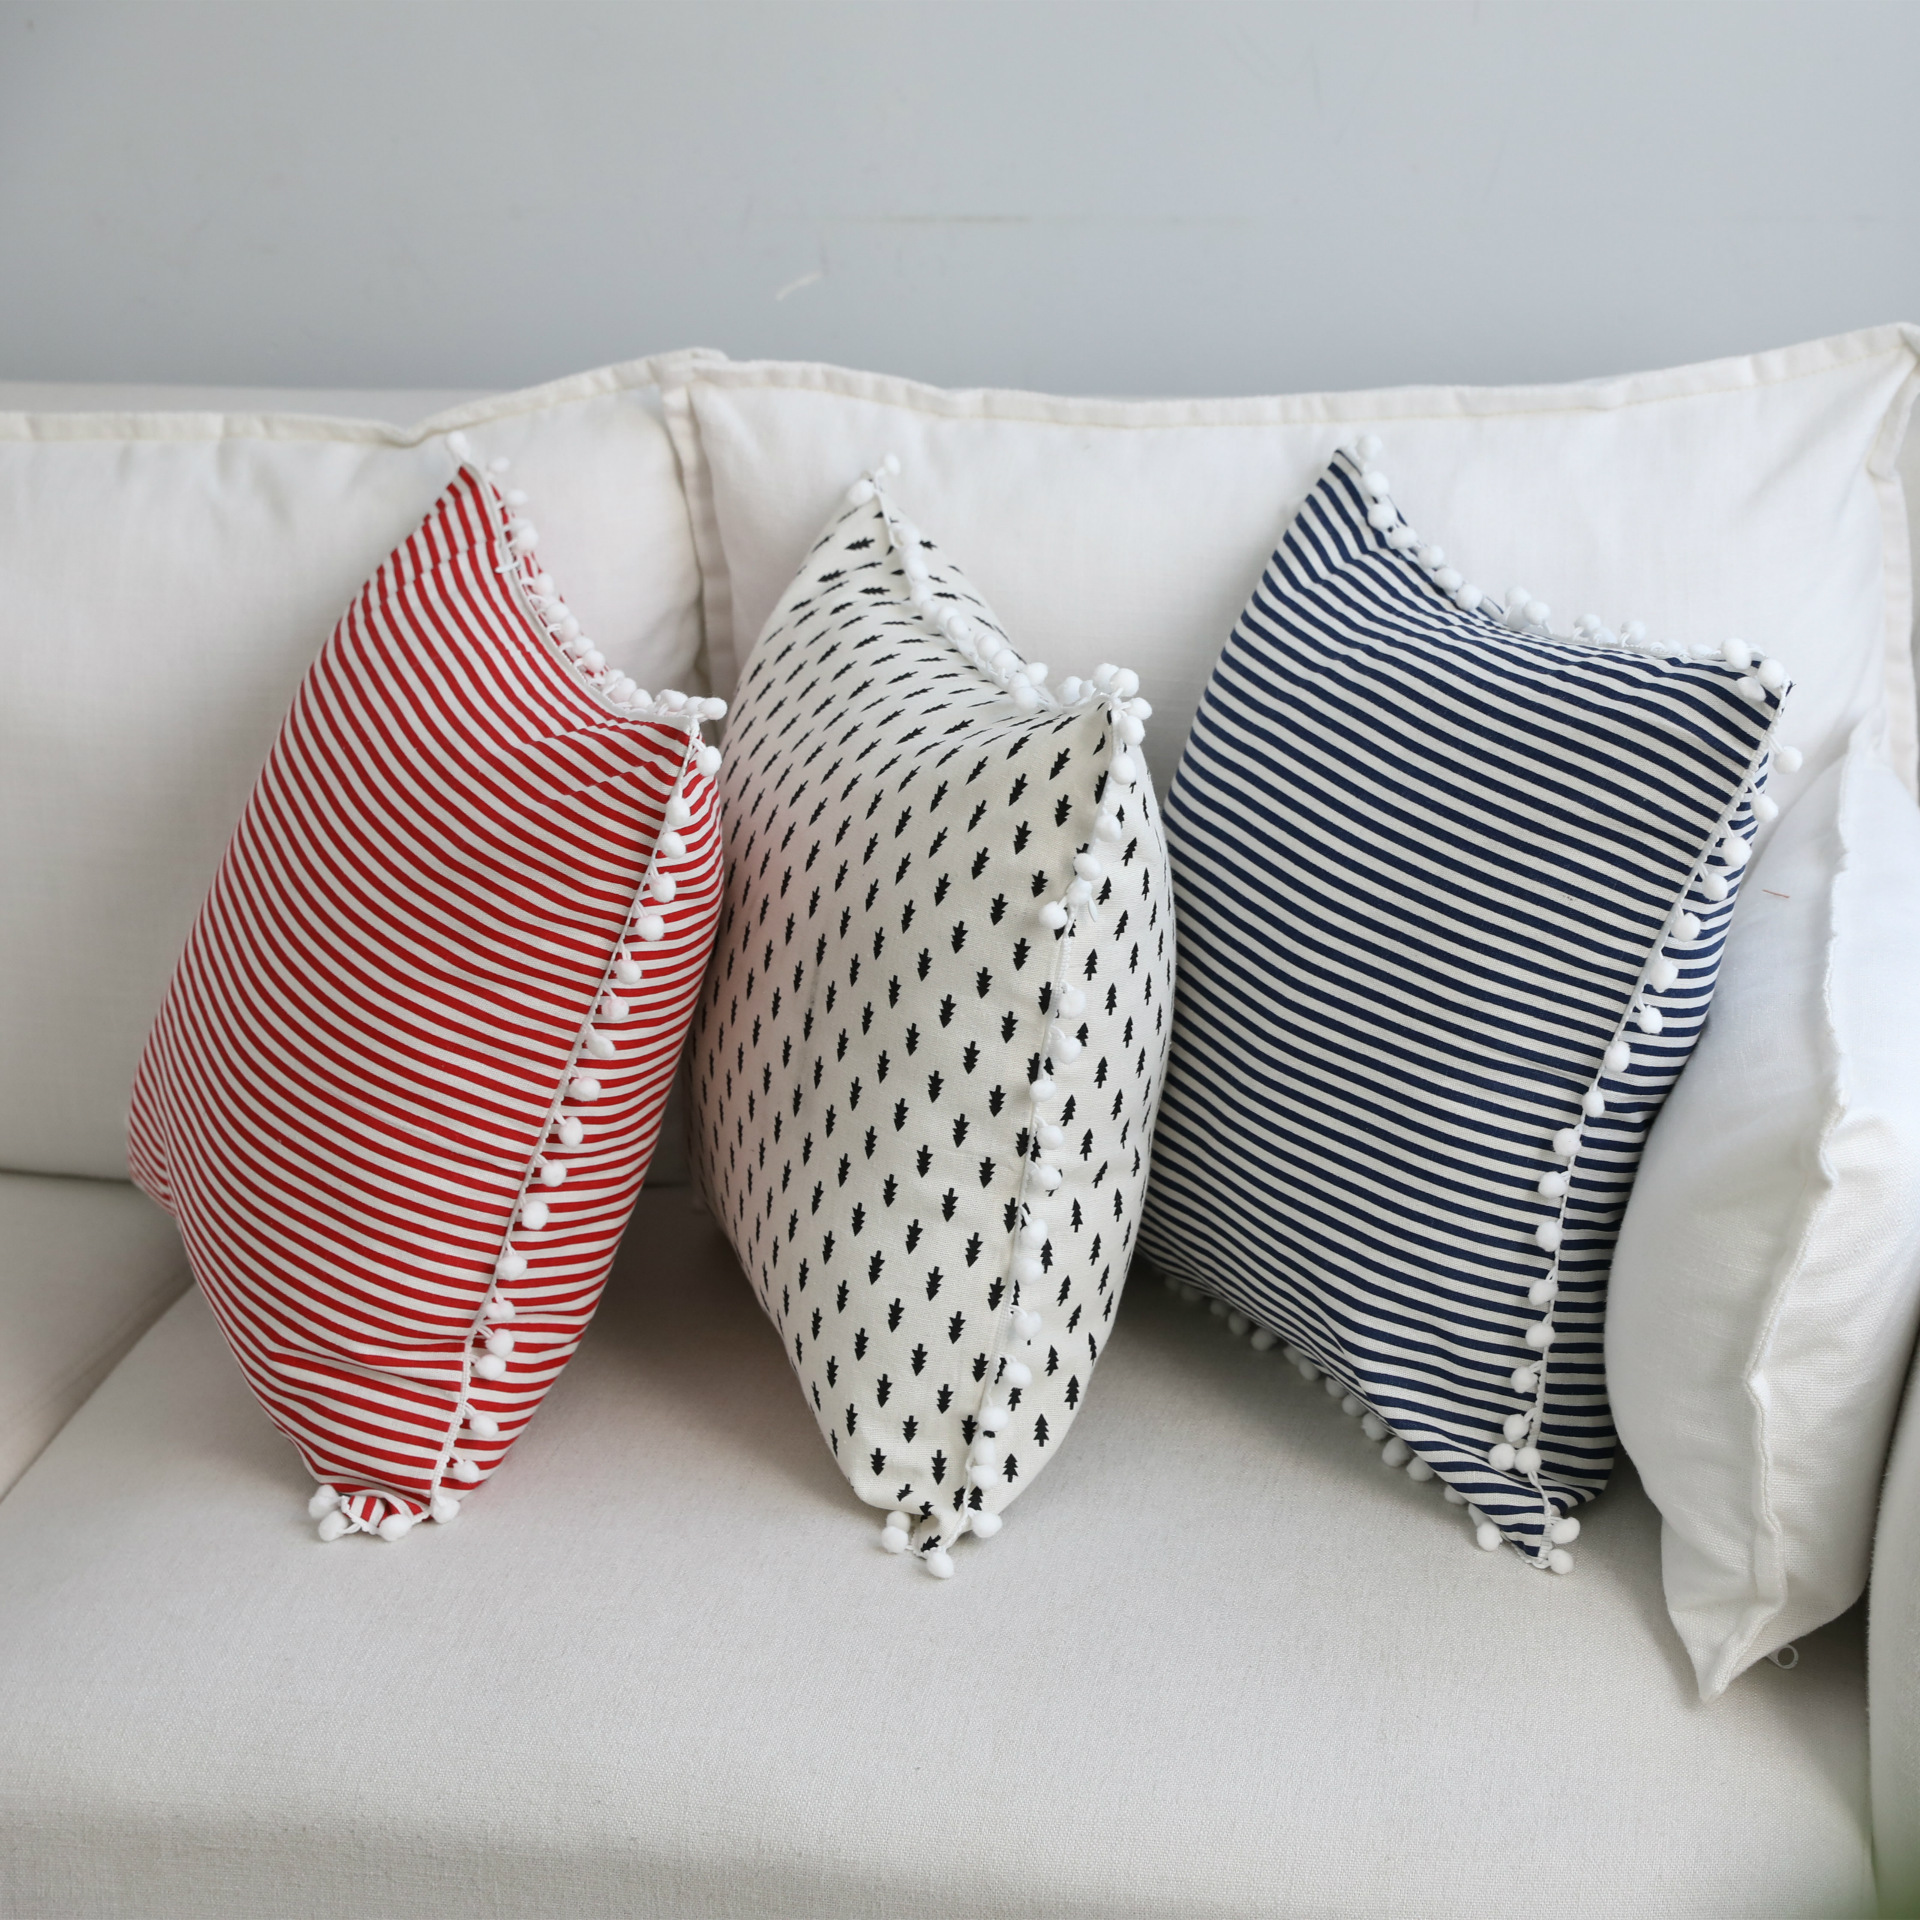 Home Simple Decorative Pillowcases Sweet Style Pom Tassel Dot Pillow Cases Cotton Linen Cover Home Party Hotel Textile 45cm*45cm